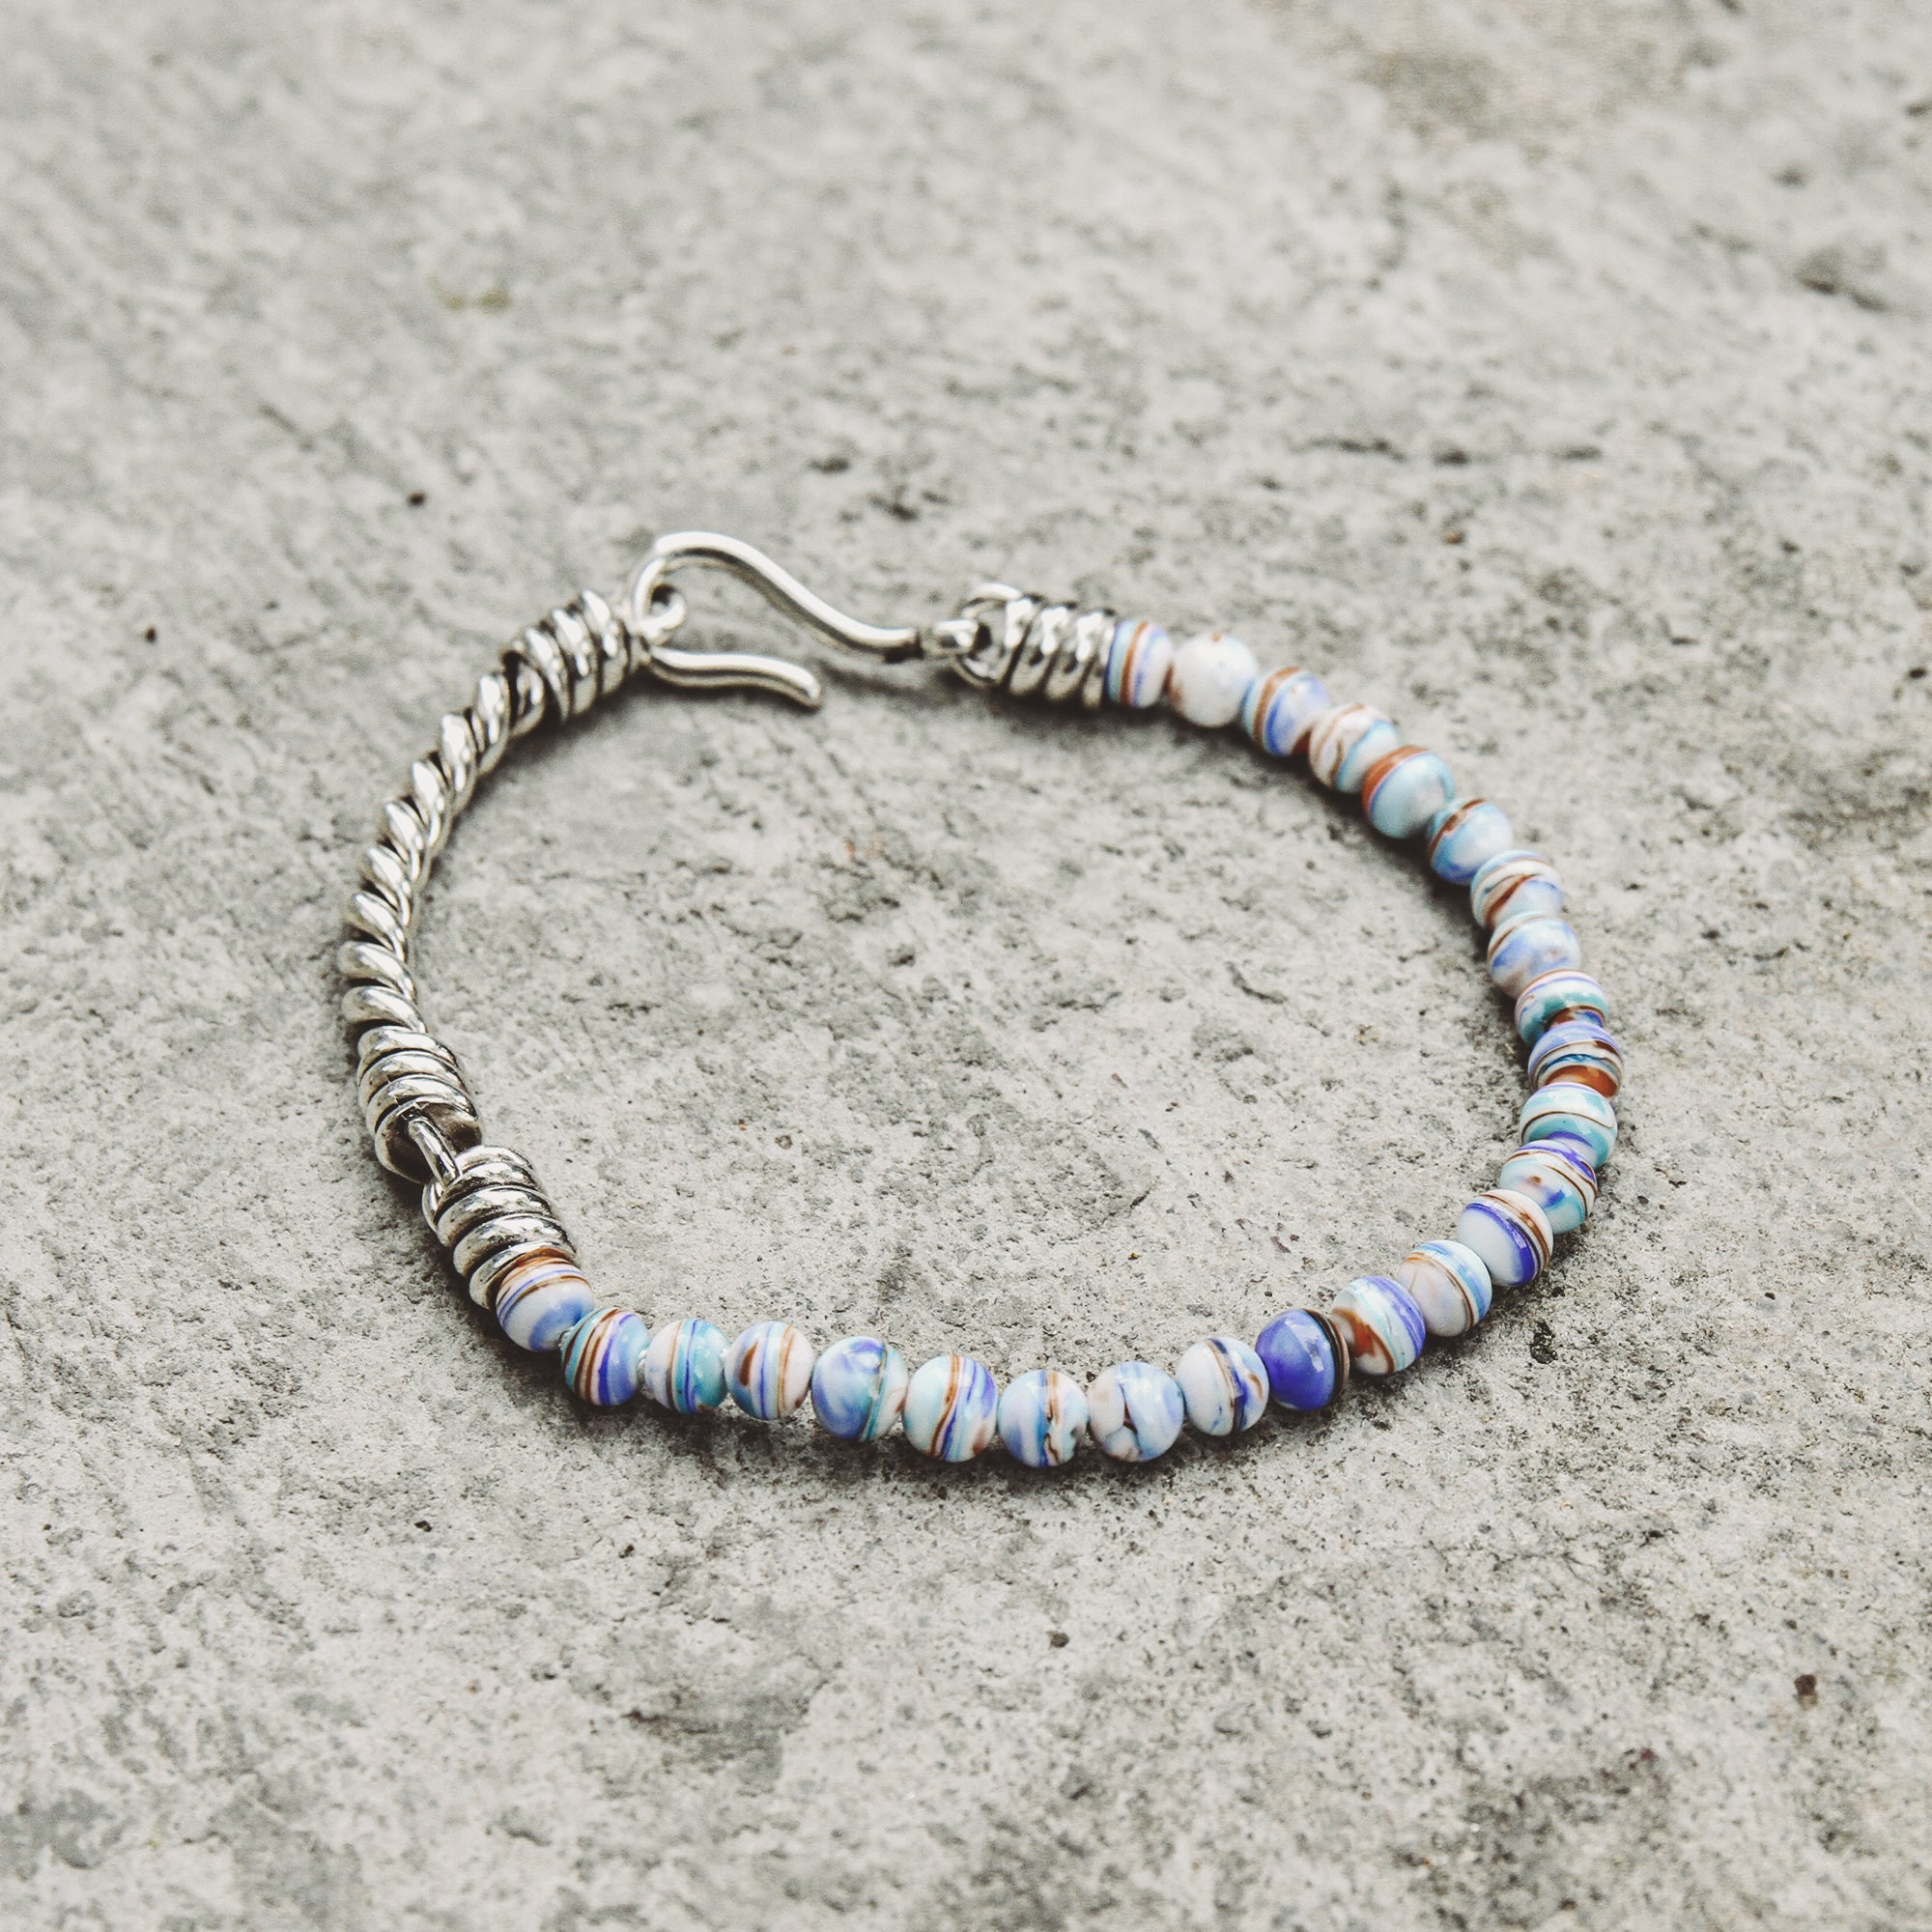 SEAGLASS | Multi-Color Murano Glass Bead Bracelet with Rope Detail